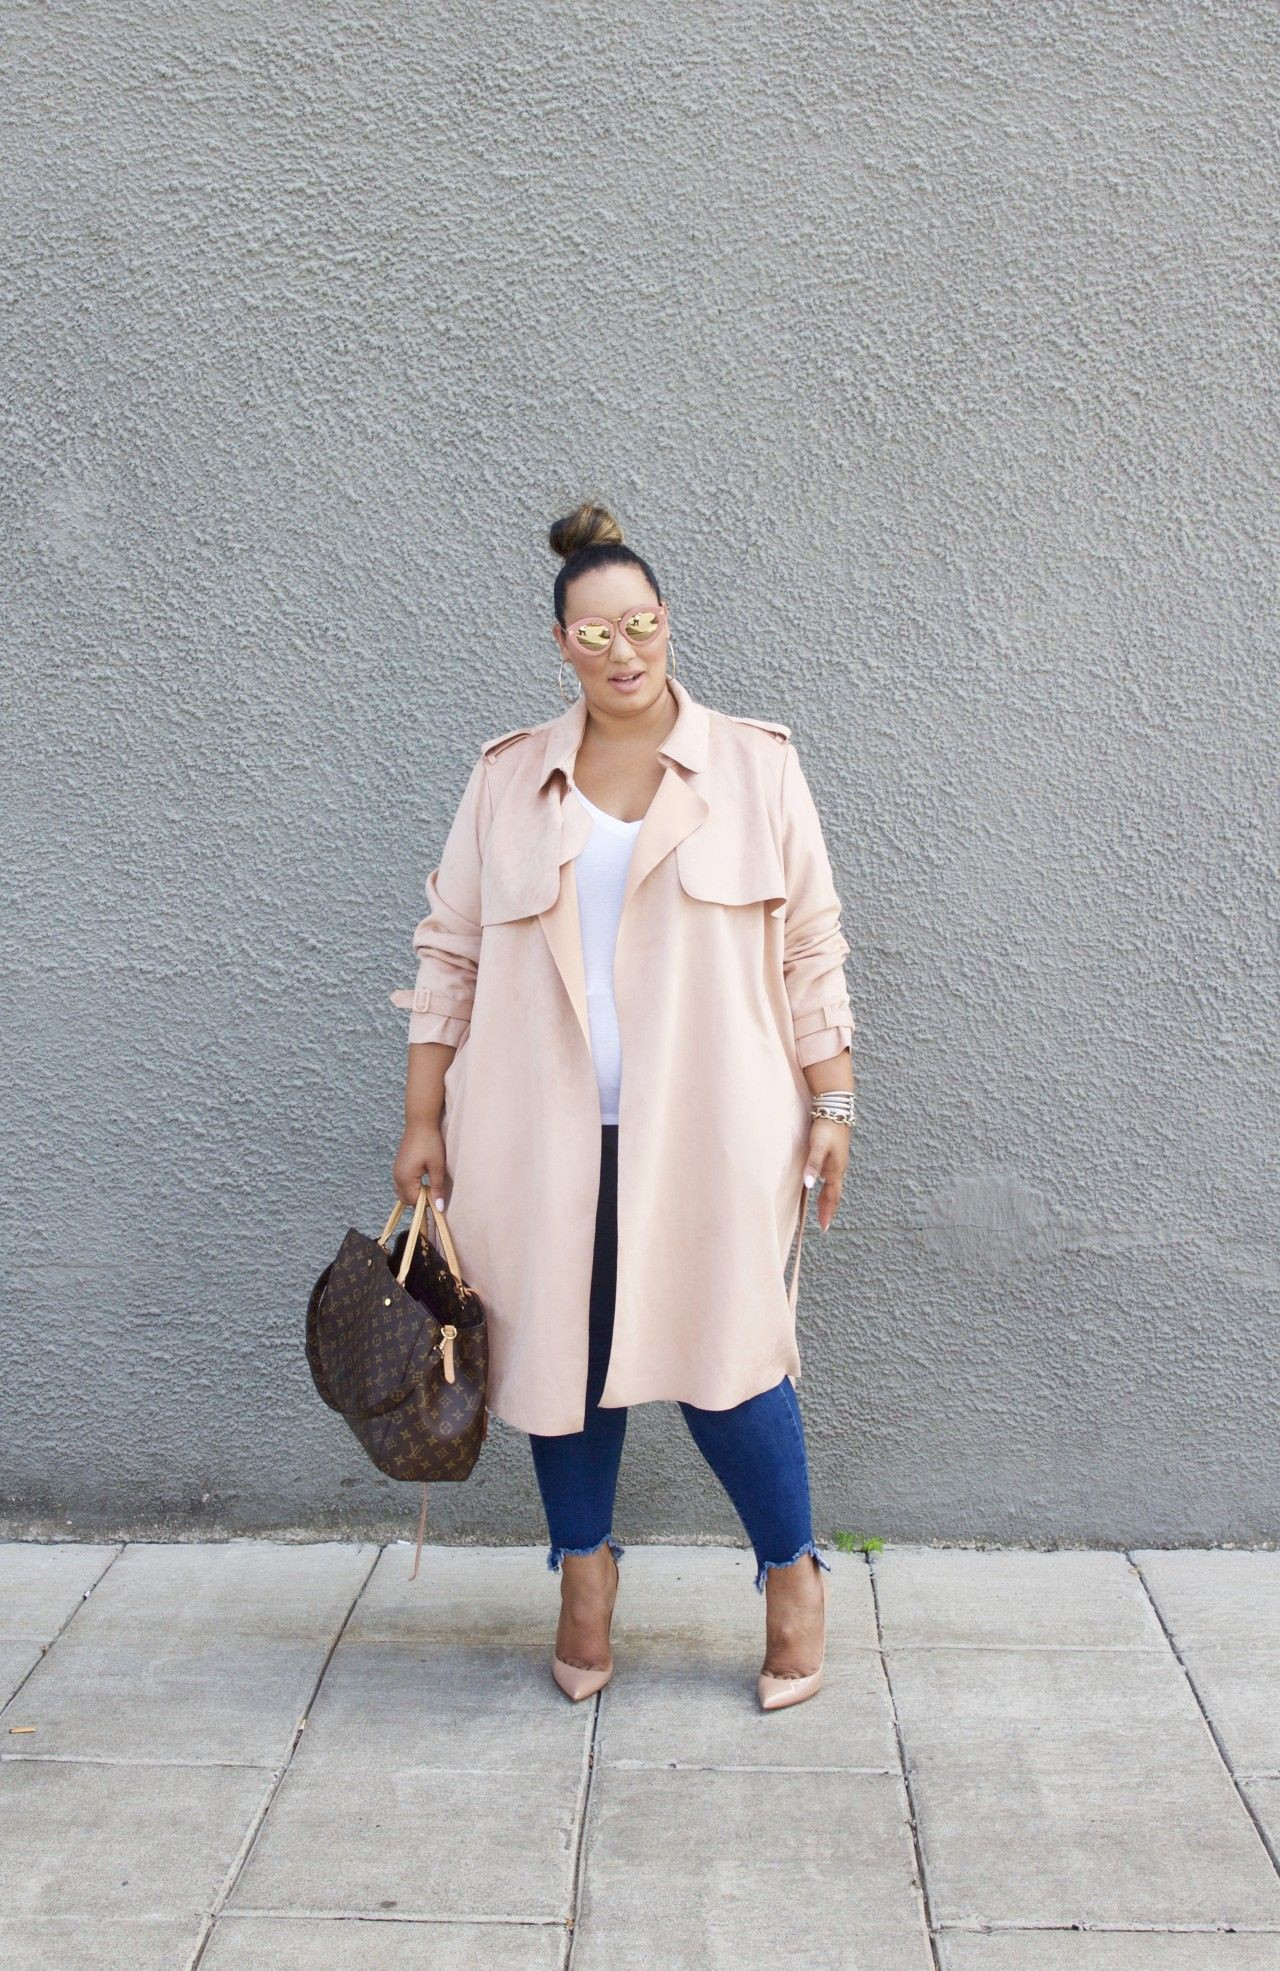 Beige and white colour dress with trench coat, overcoat, skirt